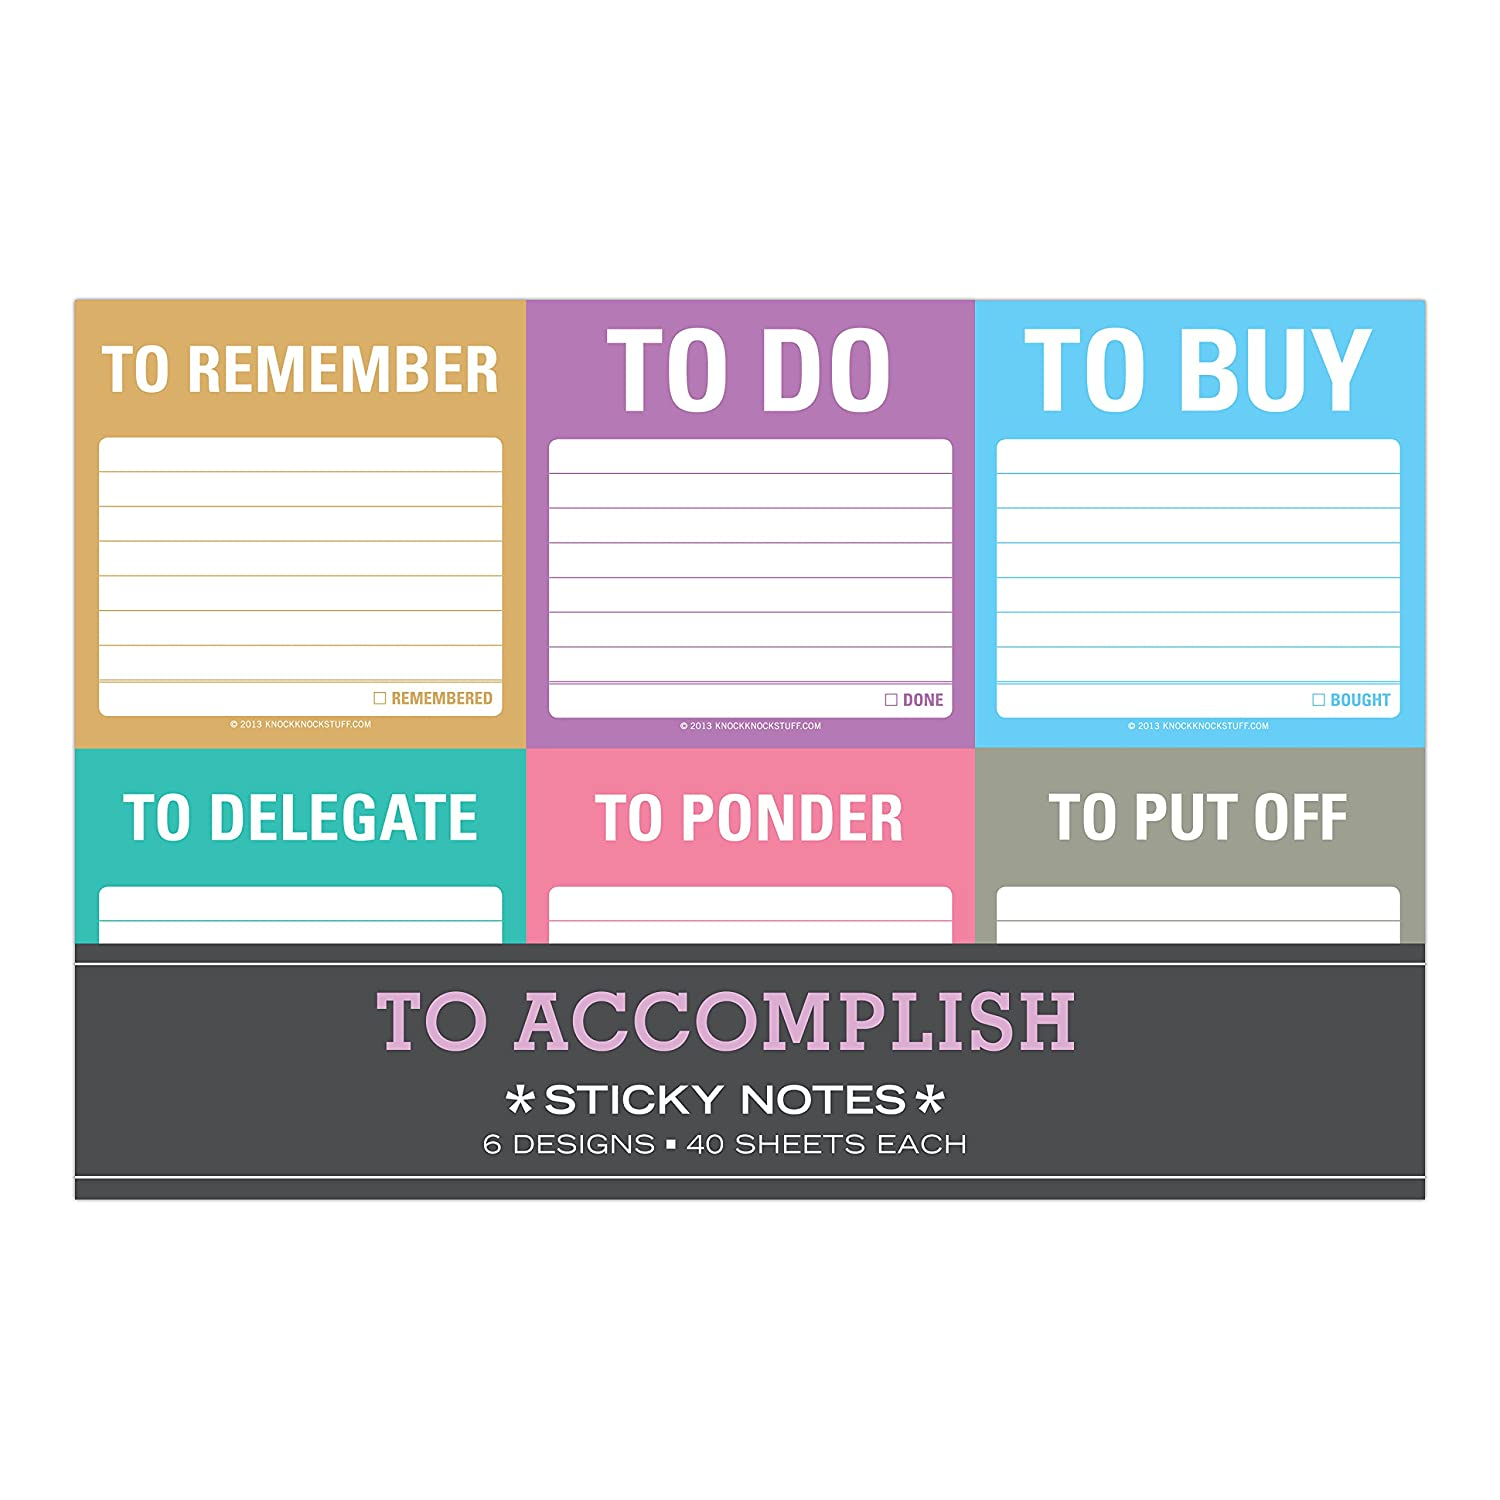 To Accomplish Sticky Notes Packet